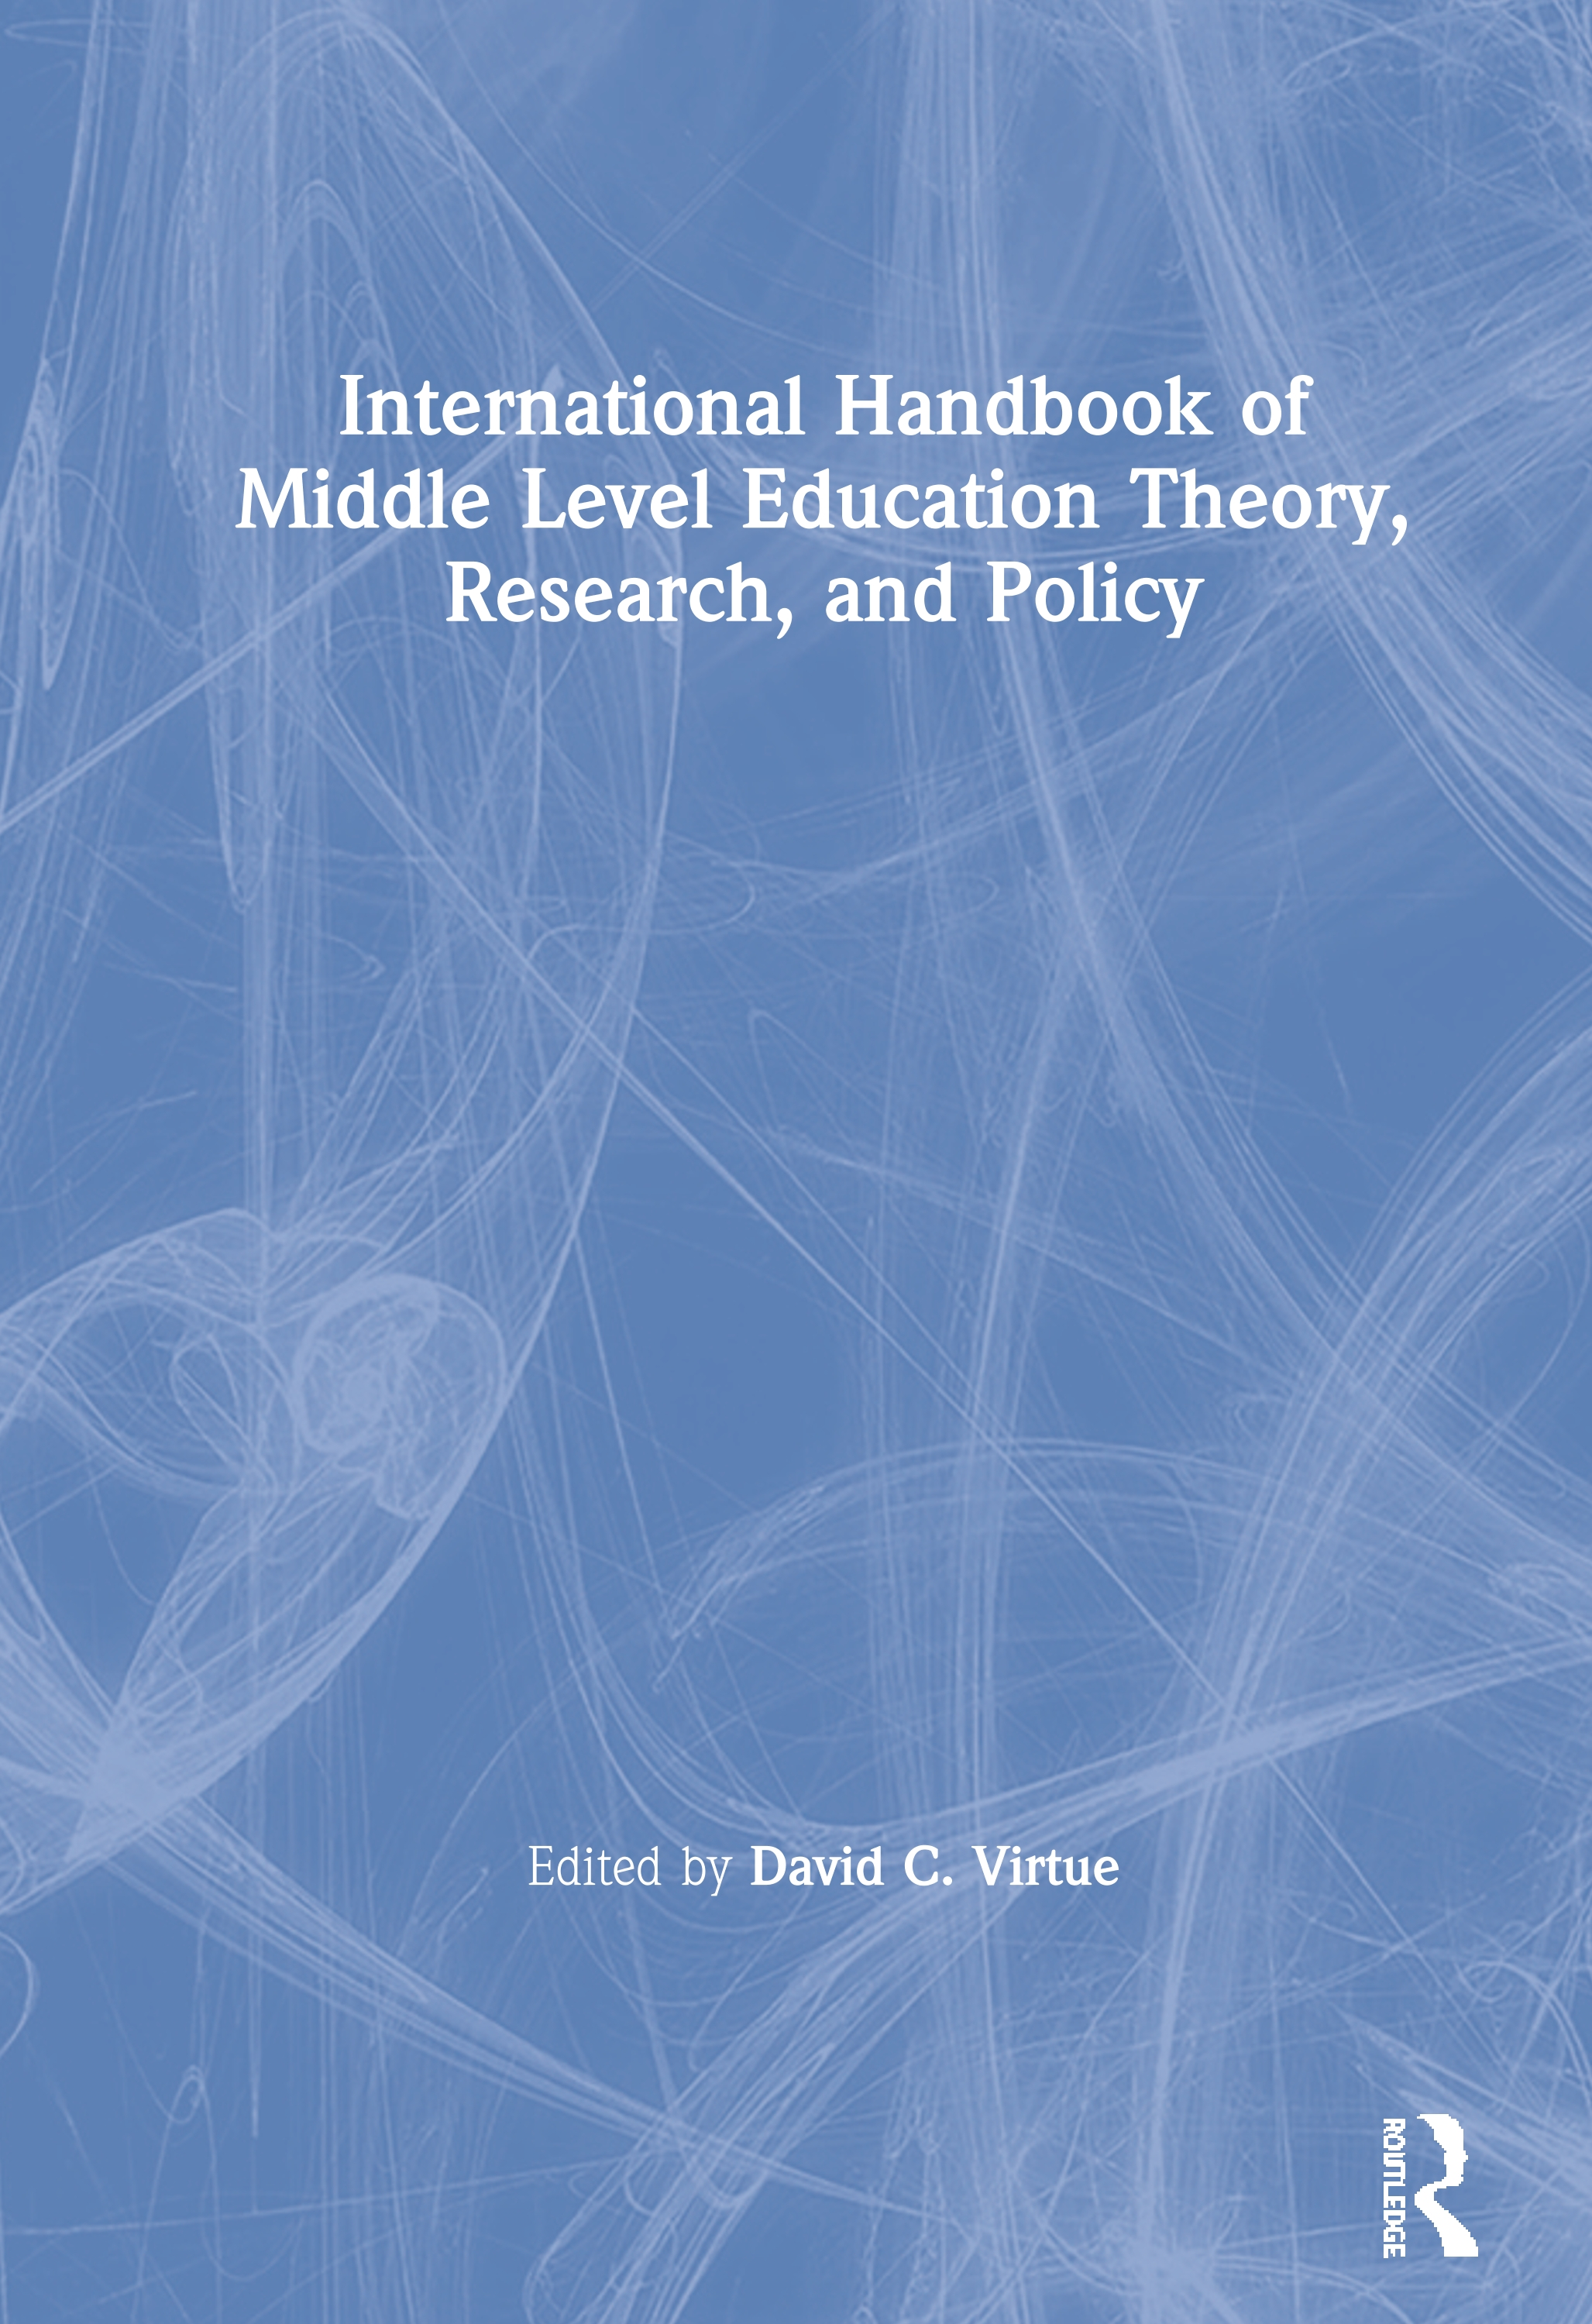 International Handbook of Middle Level Education Theory, Research, and Policy book cover